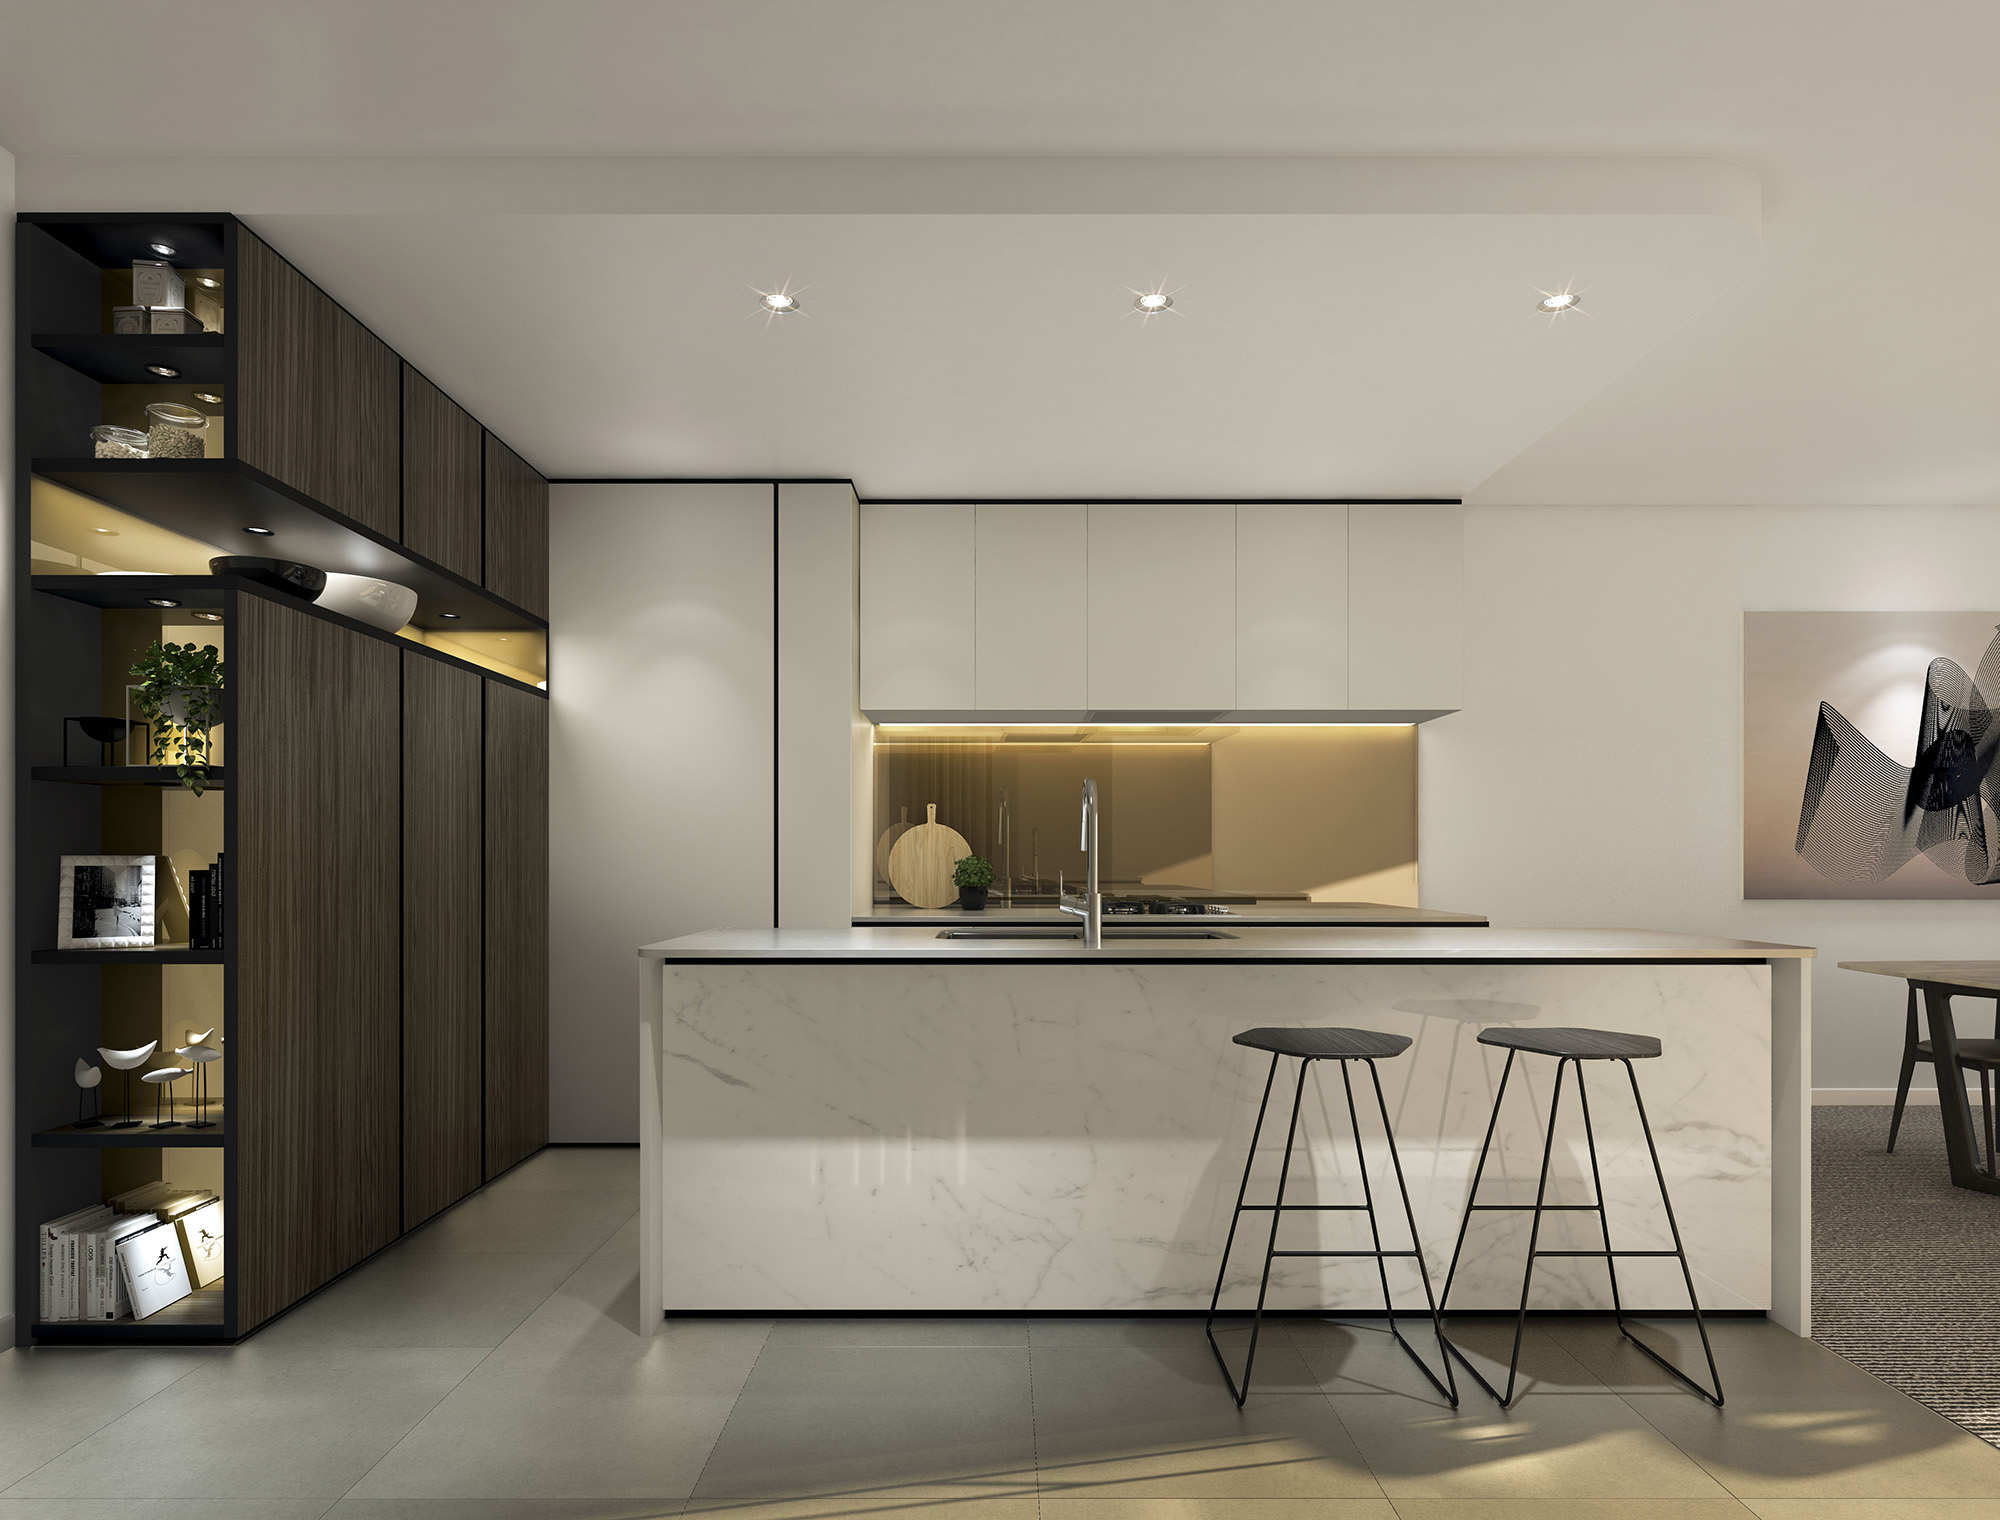 Multi-Residential project in Brisbane, QLD